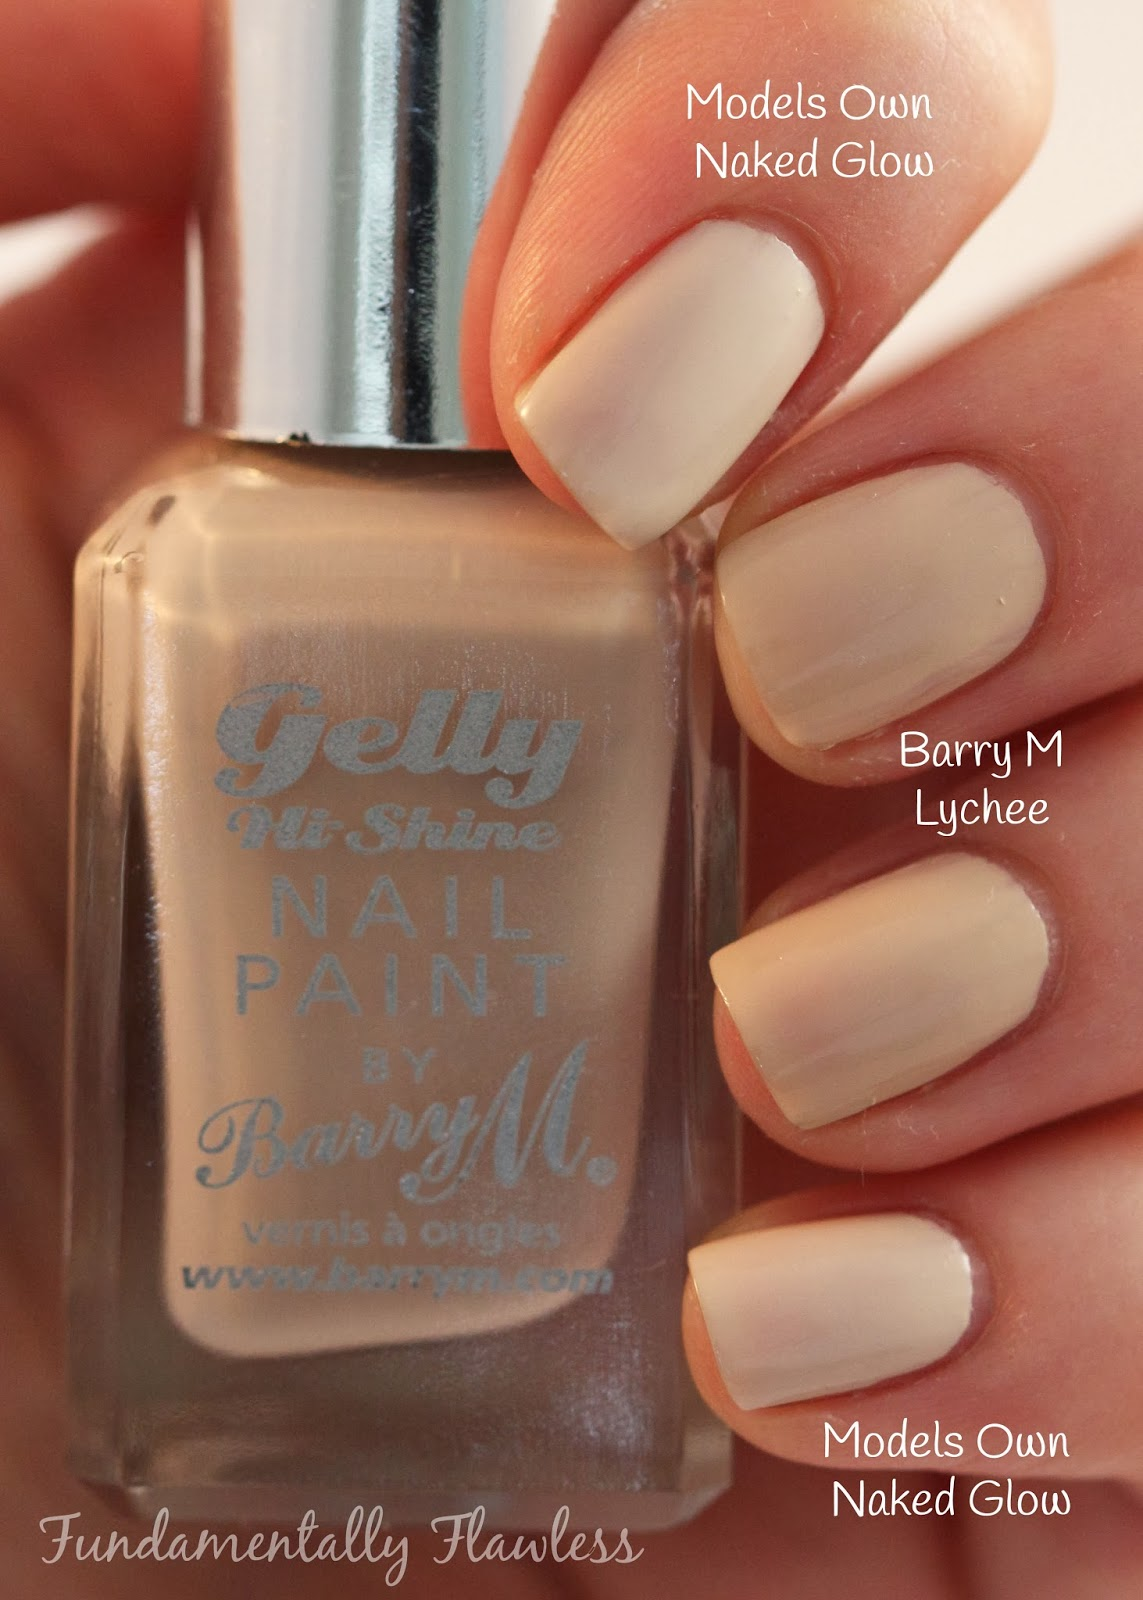 Models Own HyperGel Naked Glow vs Barry M Gelly Lychee comparison